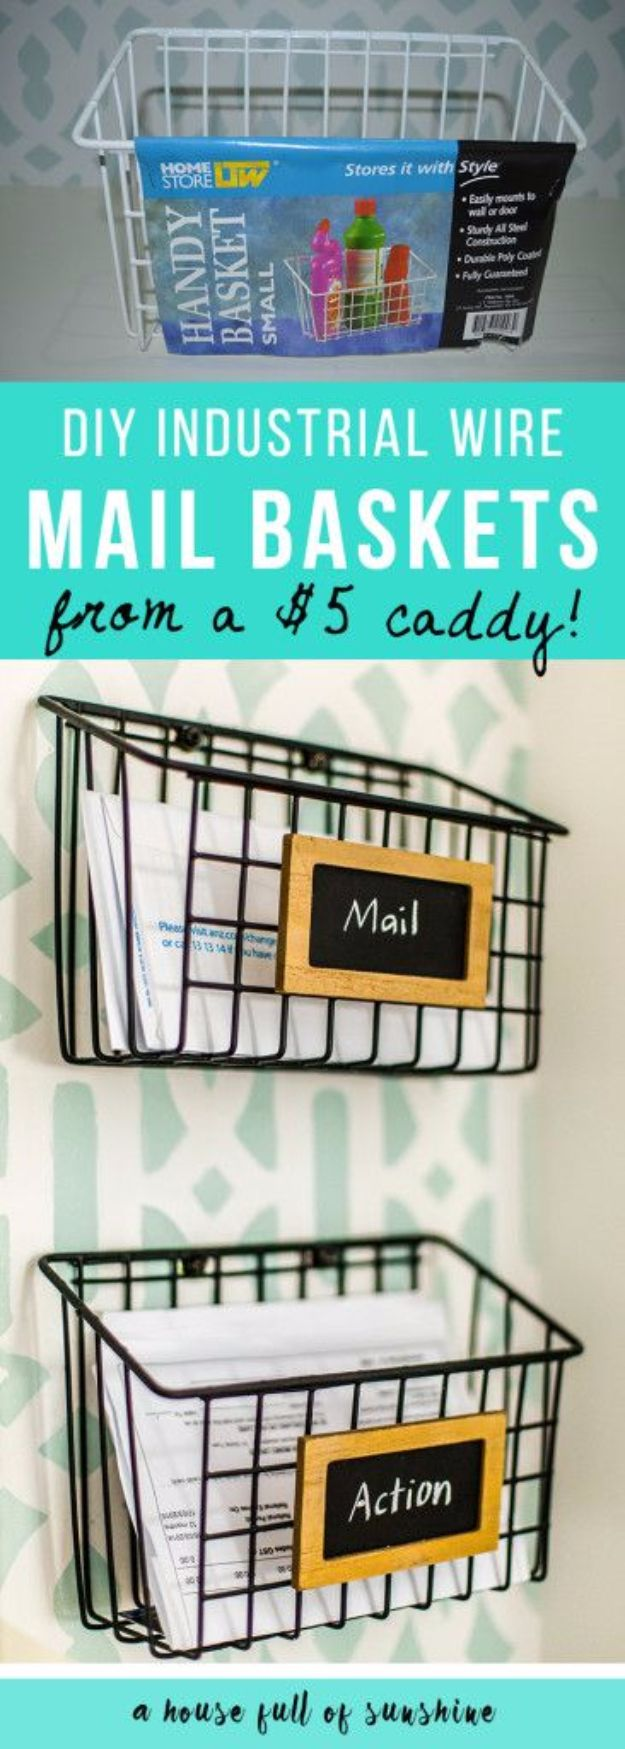 181 best THRIFTY TRANSFORMATIONS images on Pinterest | Craft ...